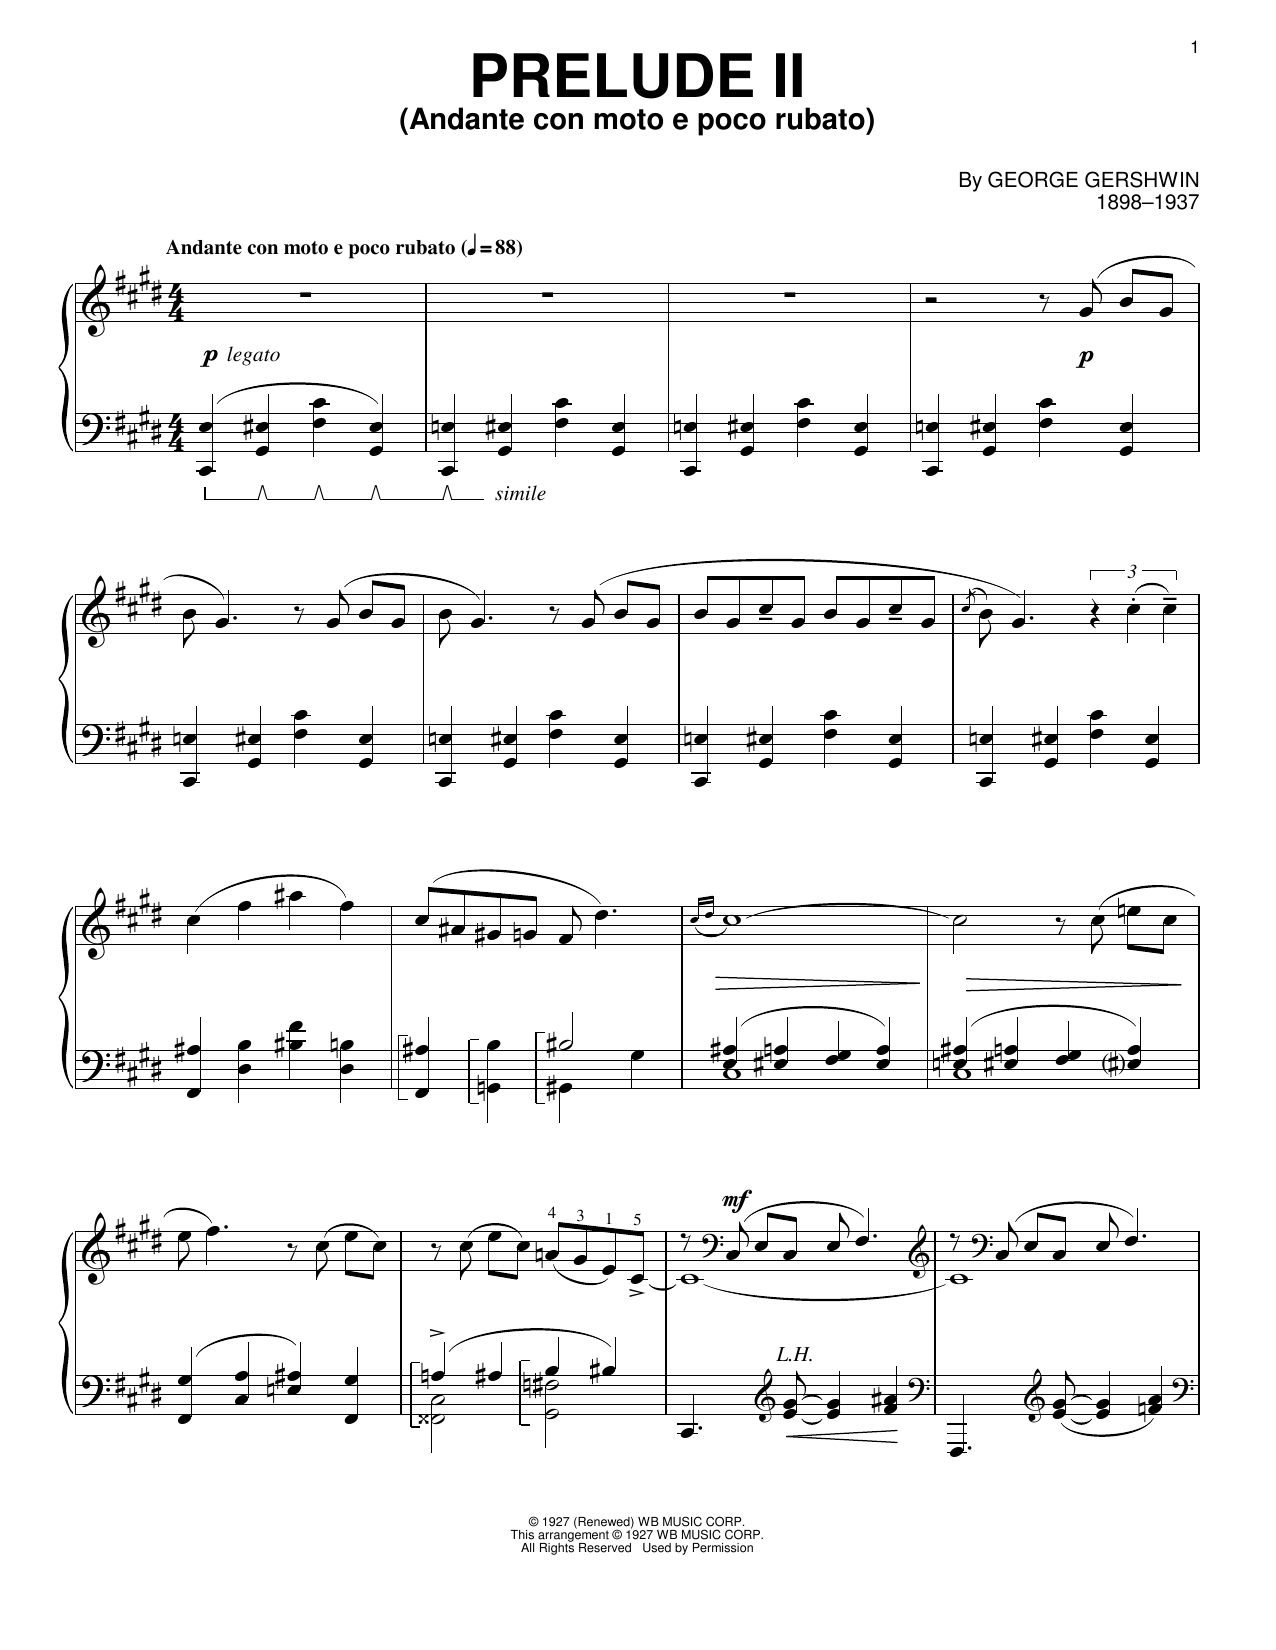 George Gershwin Prelude II (Andante Con Moto E Poco Rubato) sheet music notes and chords. Download Printable PDF.